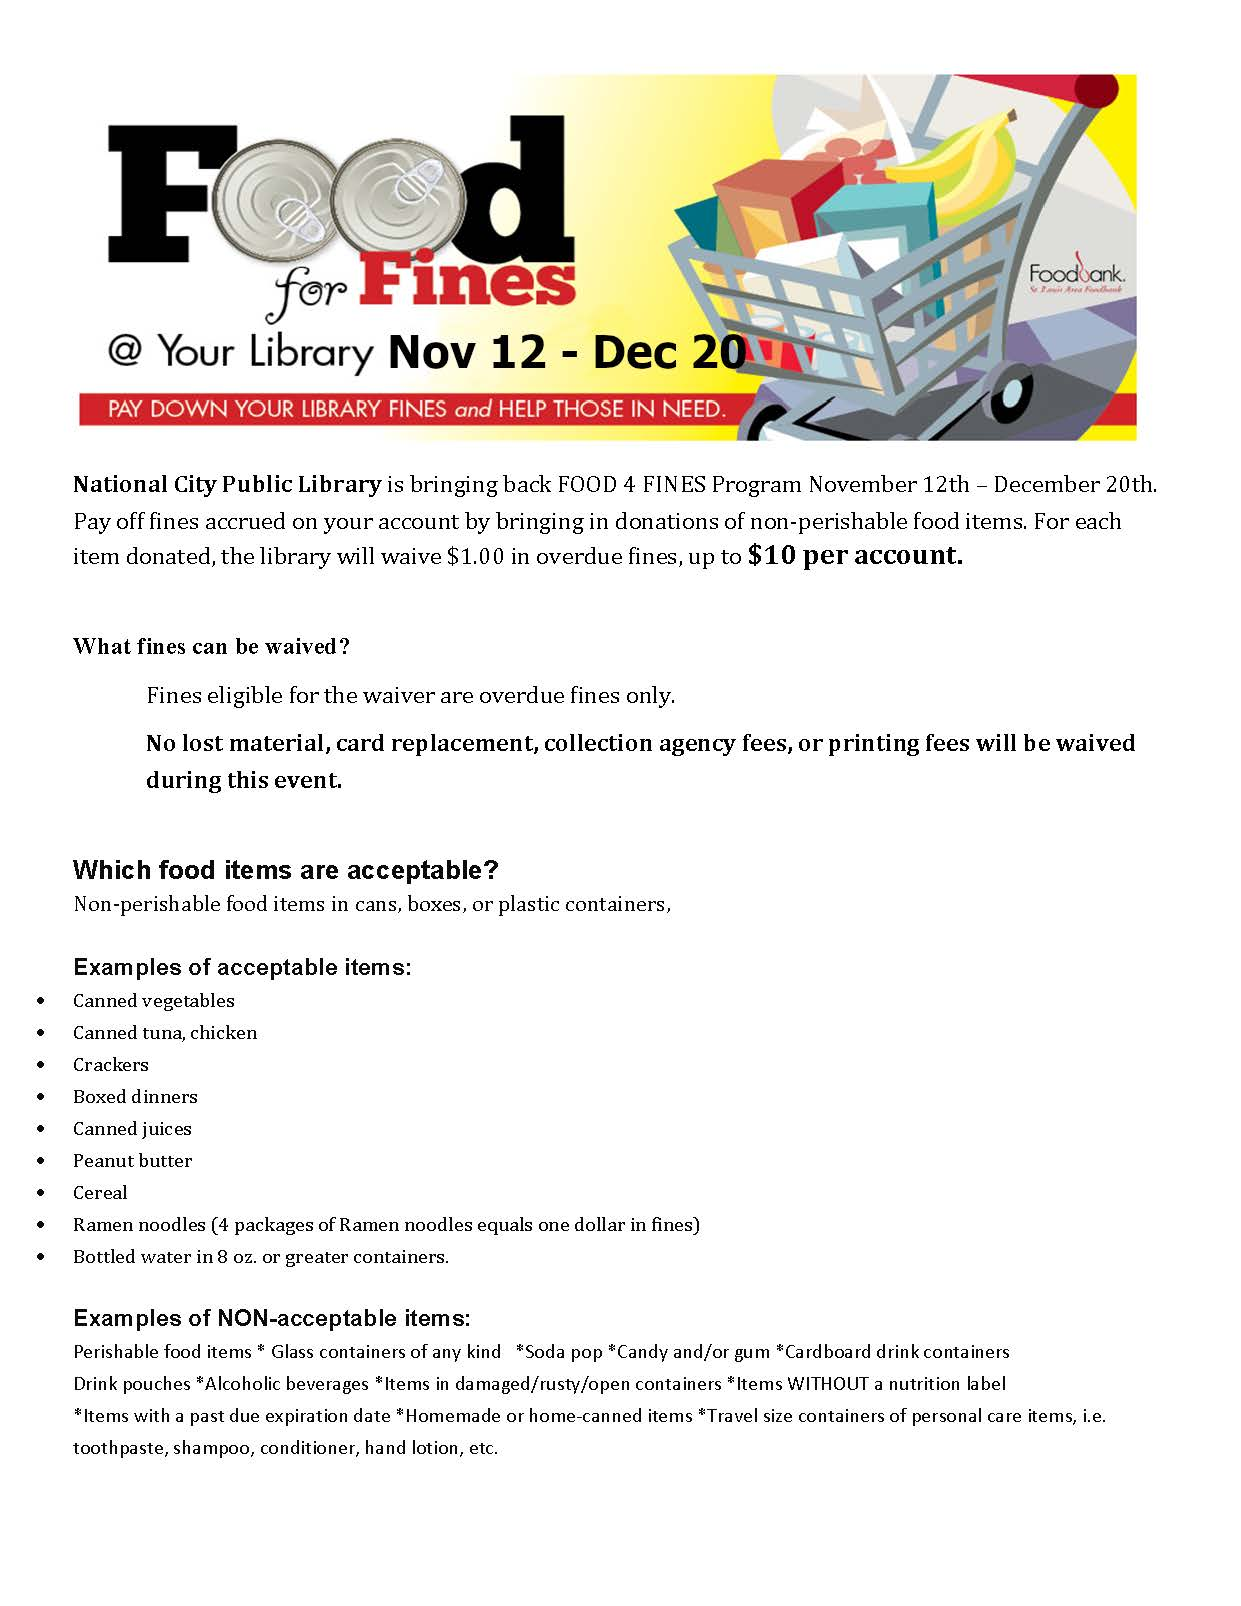 Food for fines 2018 flyer 11.1.18